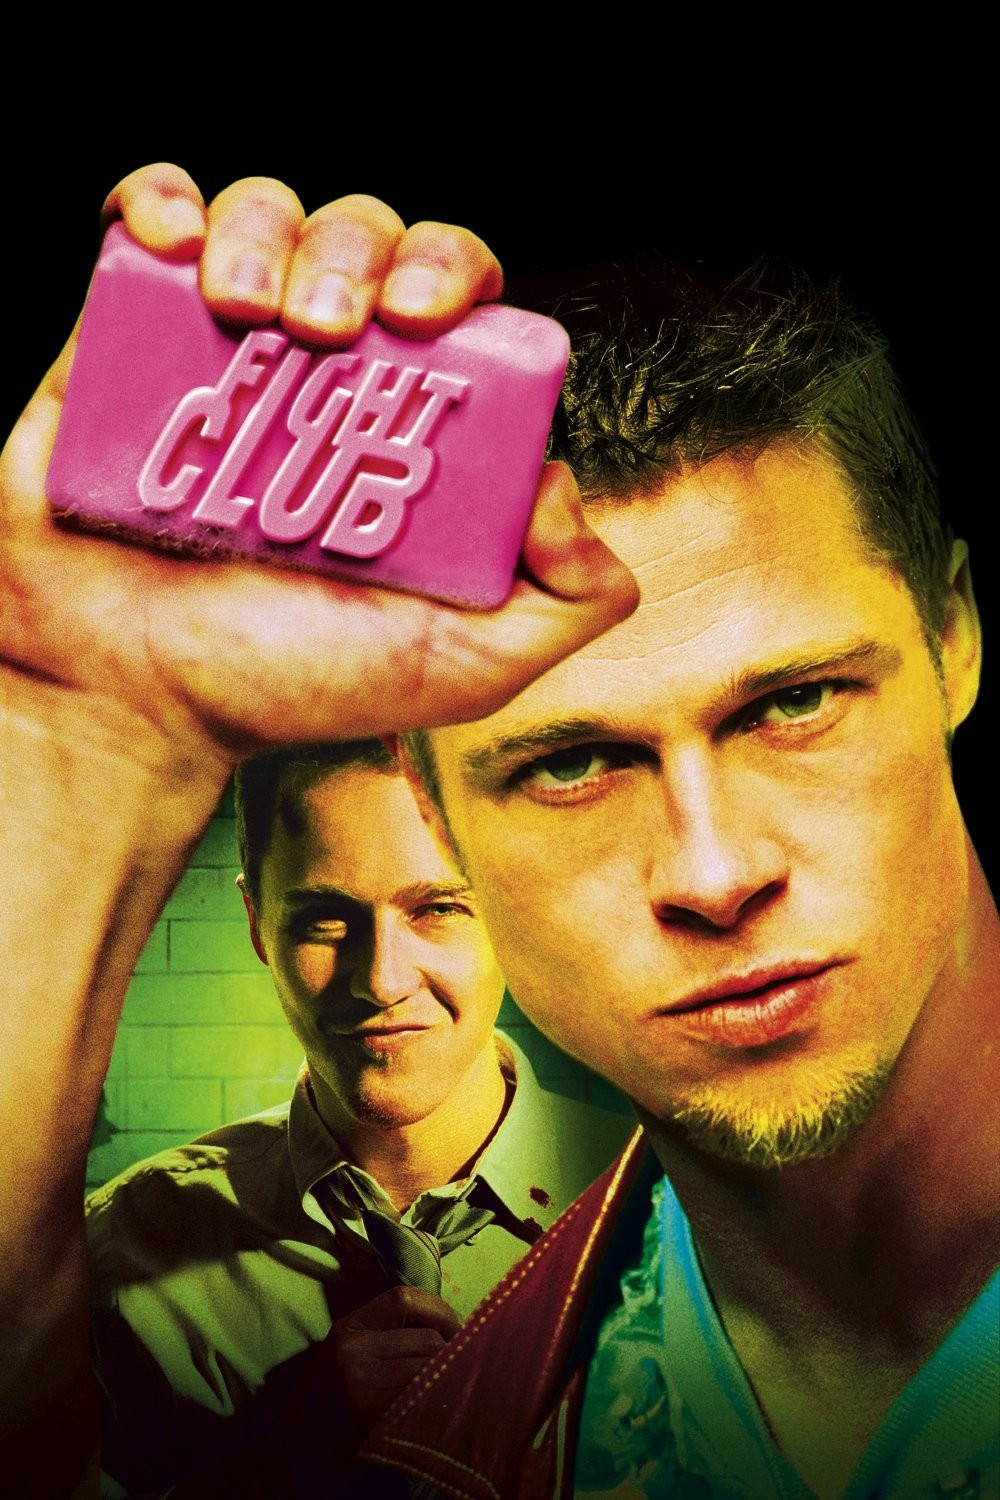 1000+ images about Fight Club on Pinterest | Fight club